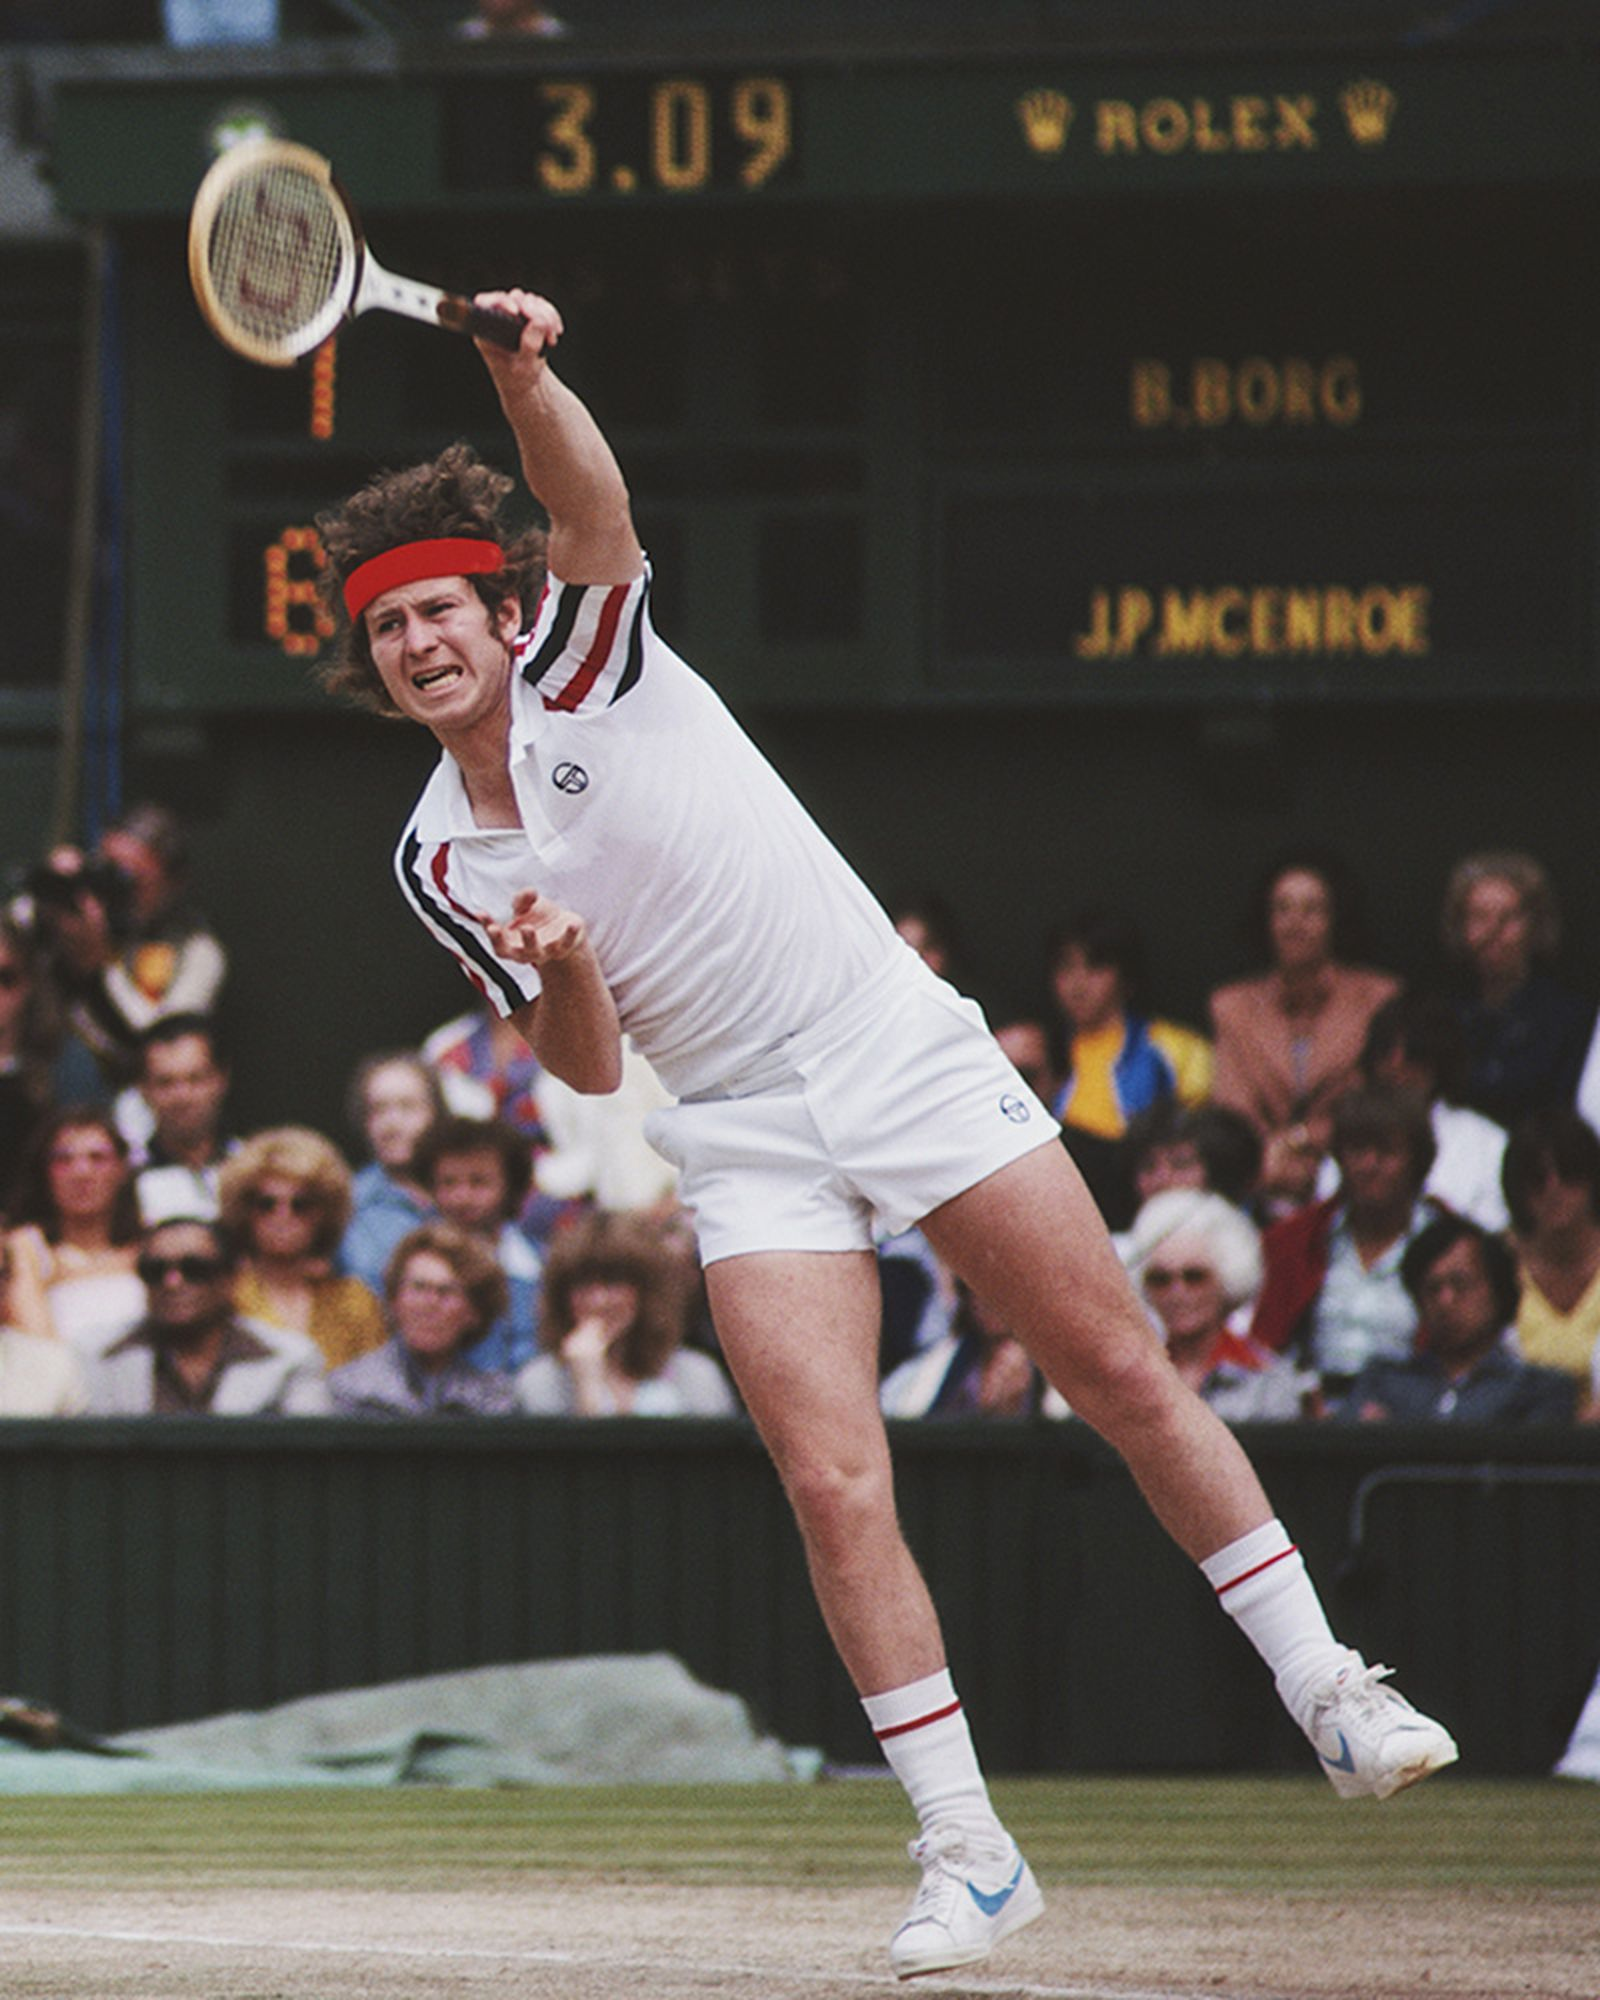 tennis-most-fashionable-rivalries-4